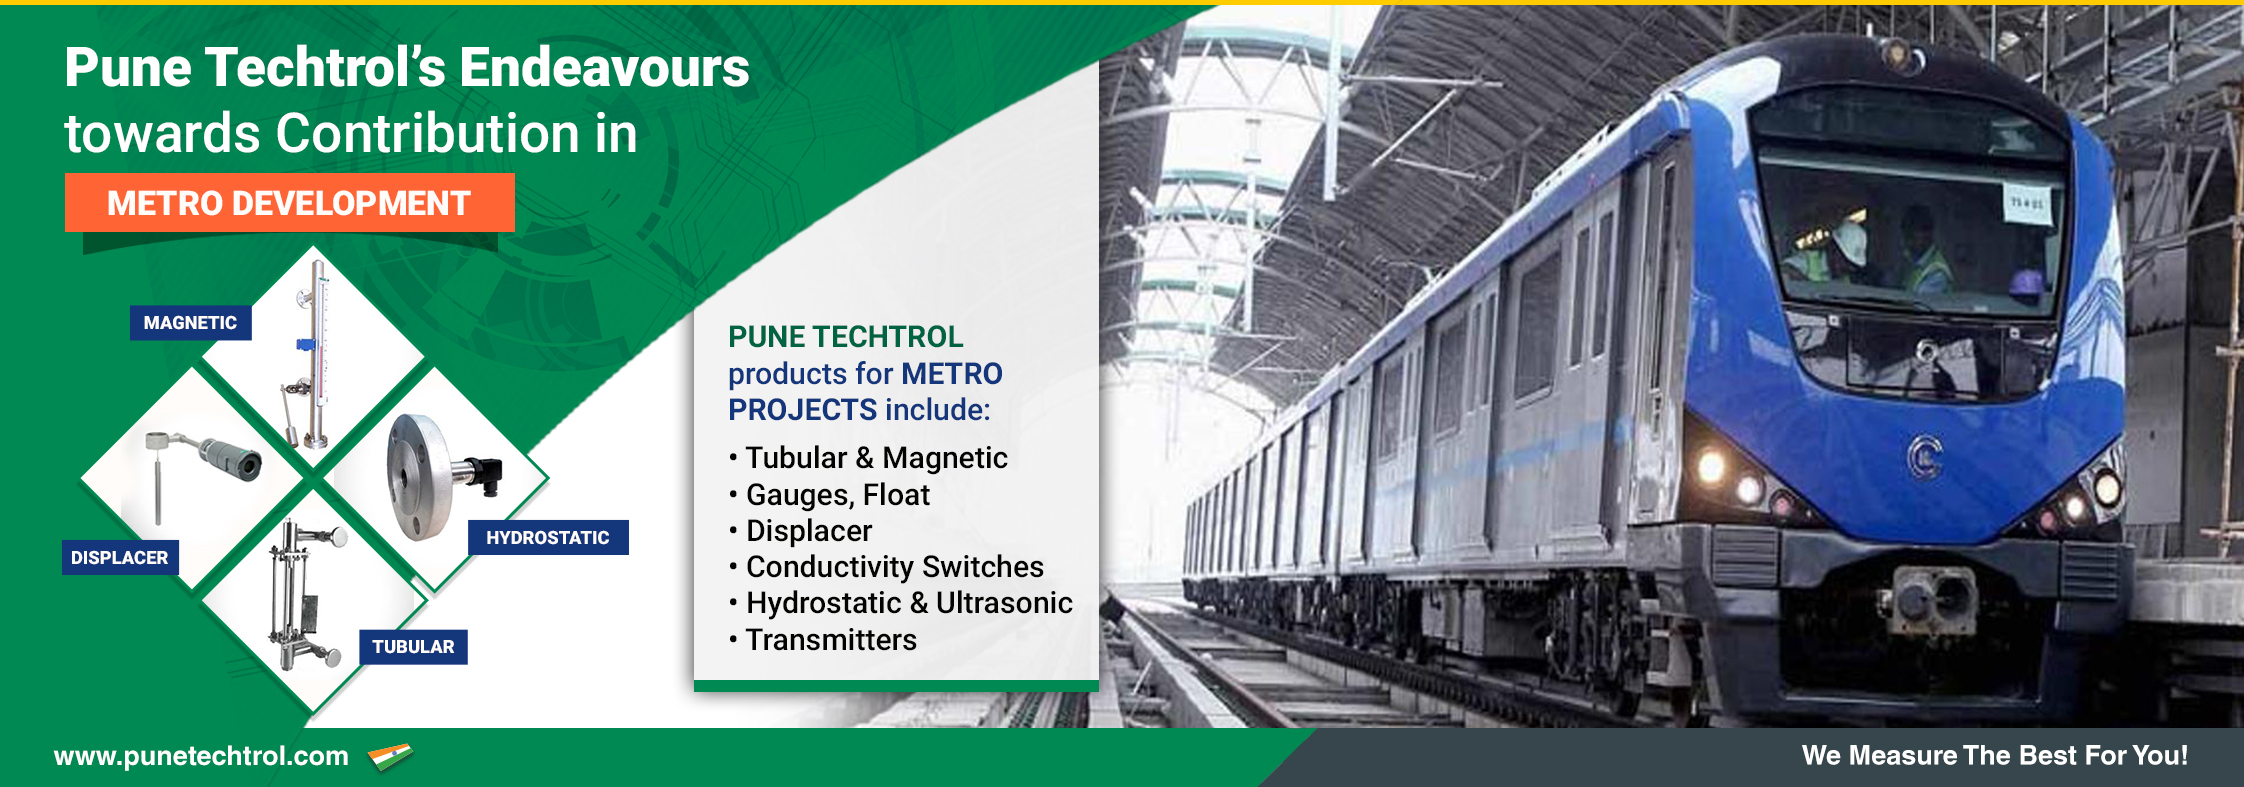 Pune Techtrols endeavours towards contribution in Metro development